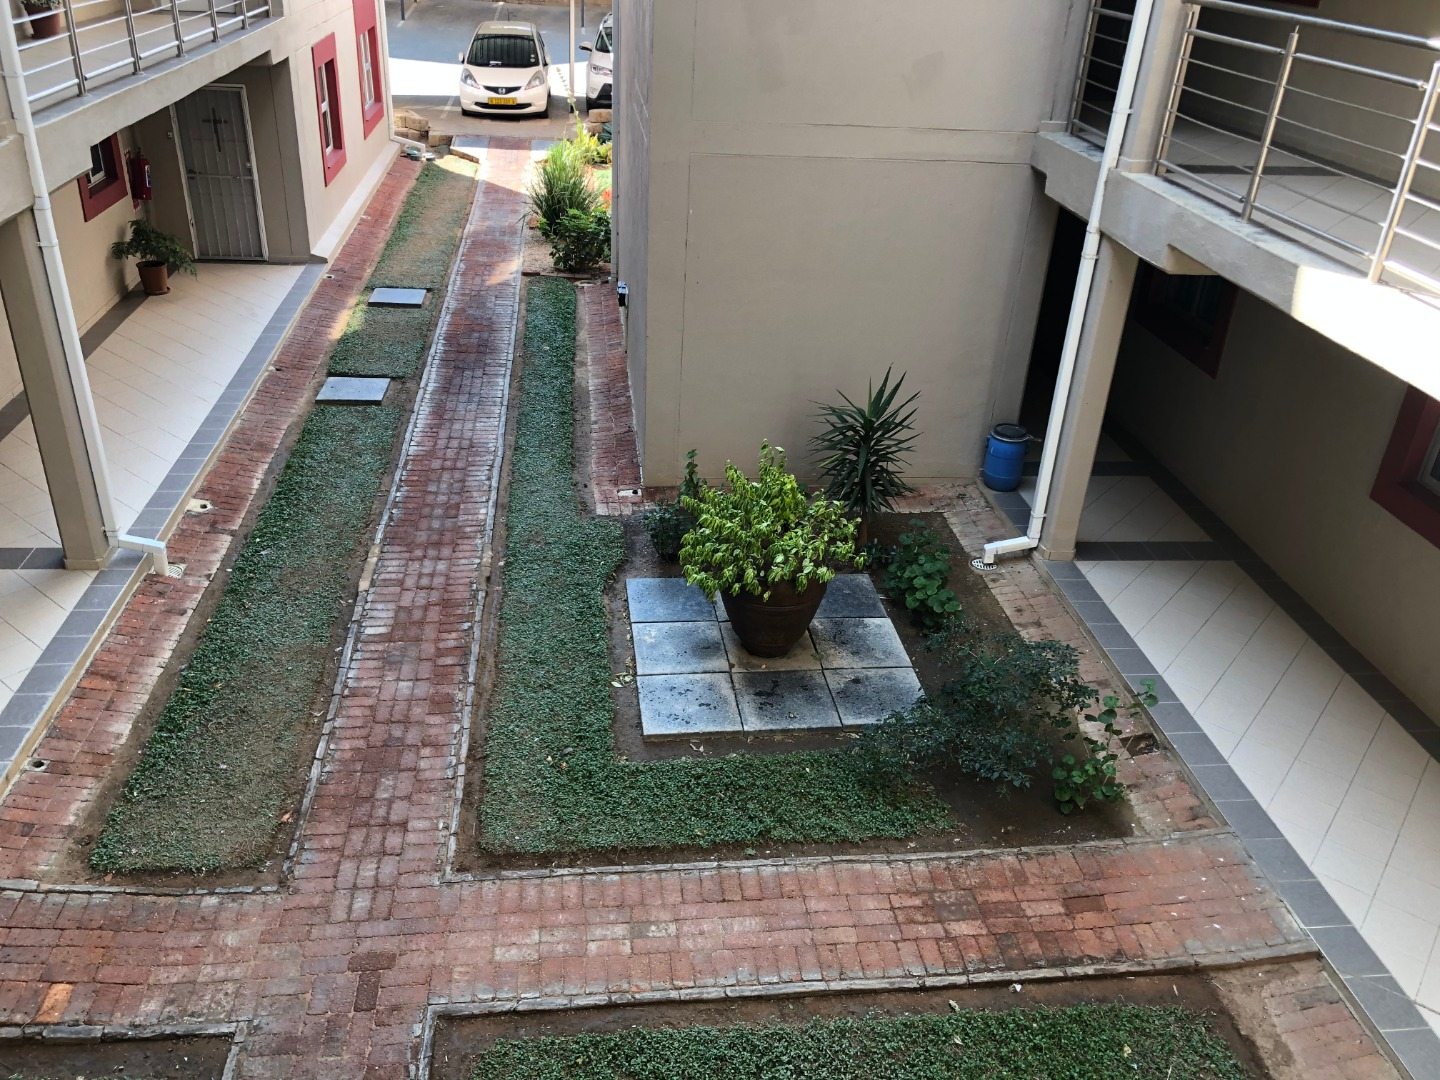 2 Bedroom Apartment / Flat For Sale in Auasblick